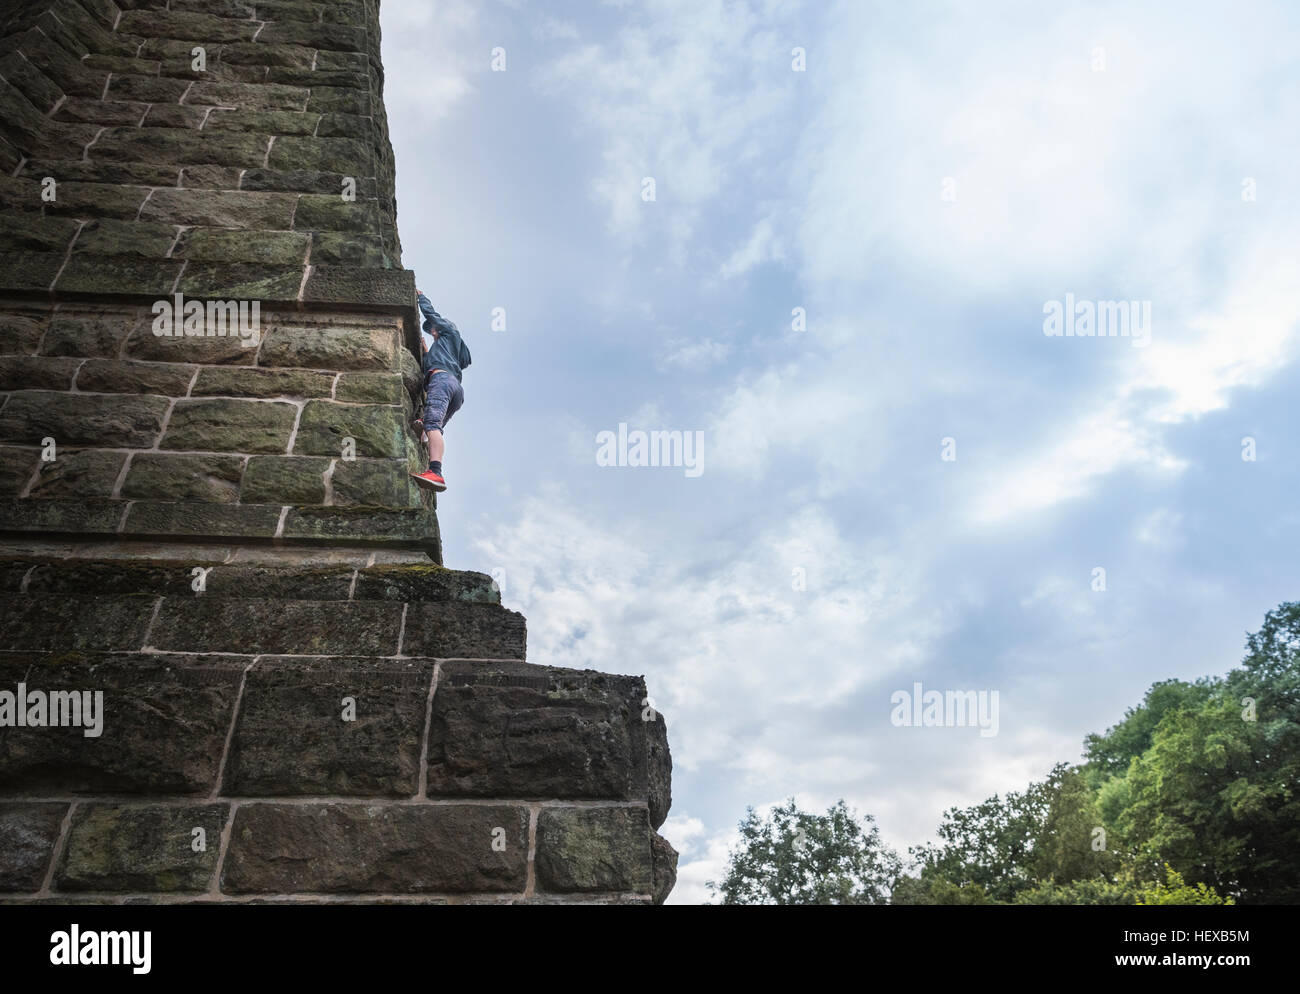 Low angle view of boy climbing stone wall - Stock Image